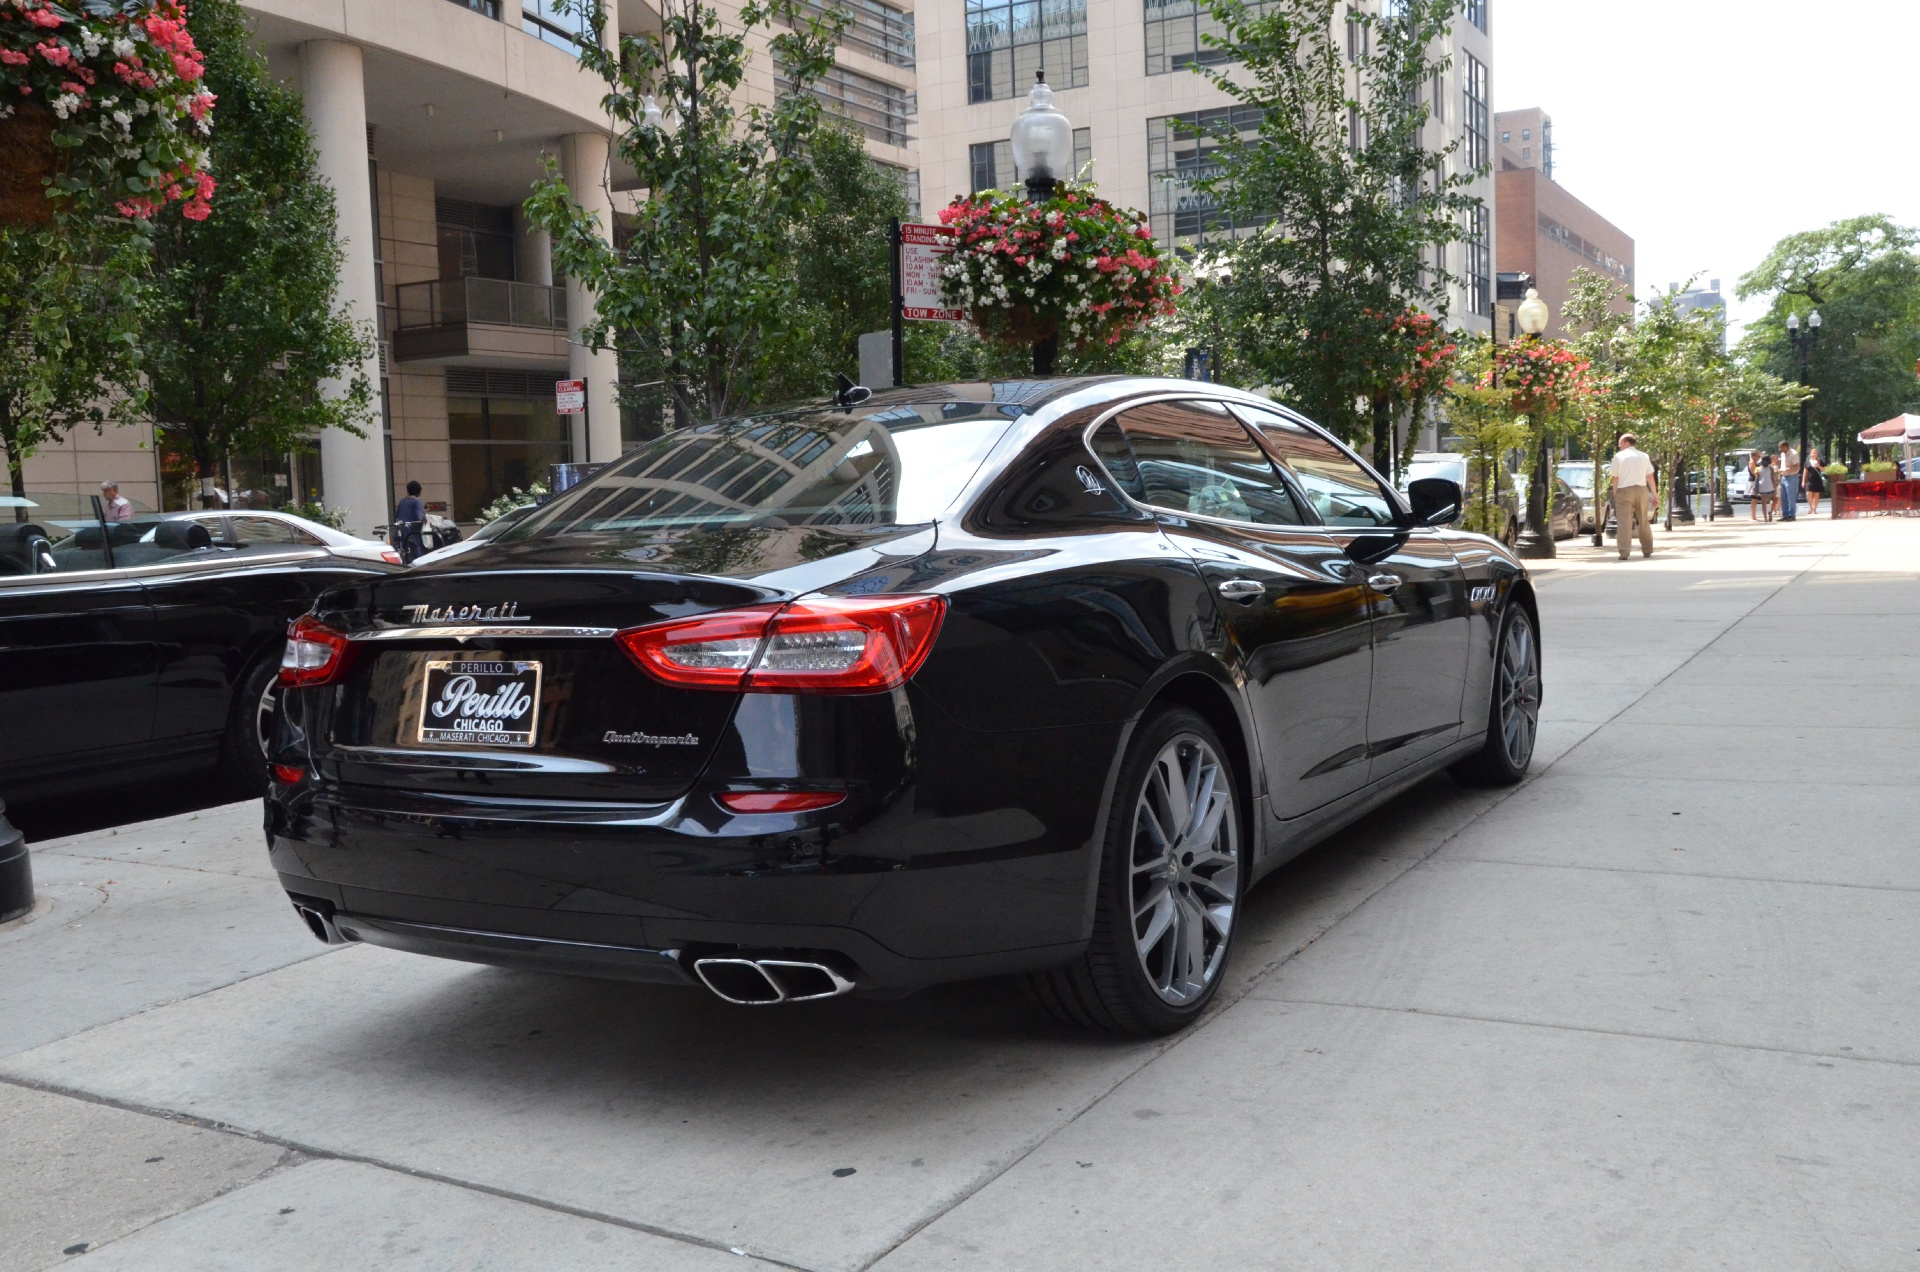 2014 maserati quattroporte gts sport gt s stock gc mir67 for sale near chicago il il. Black Bedroom Furniture Sets. Home Design Ideas